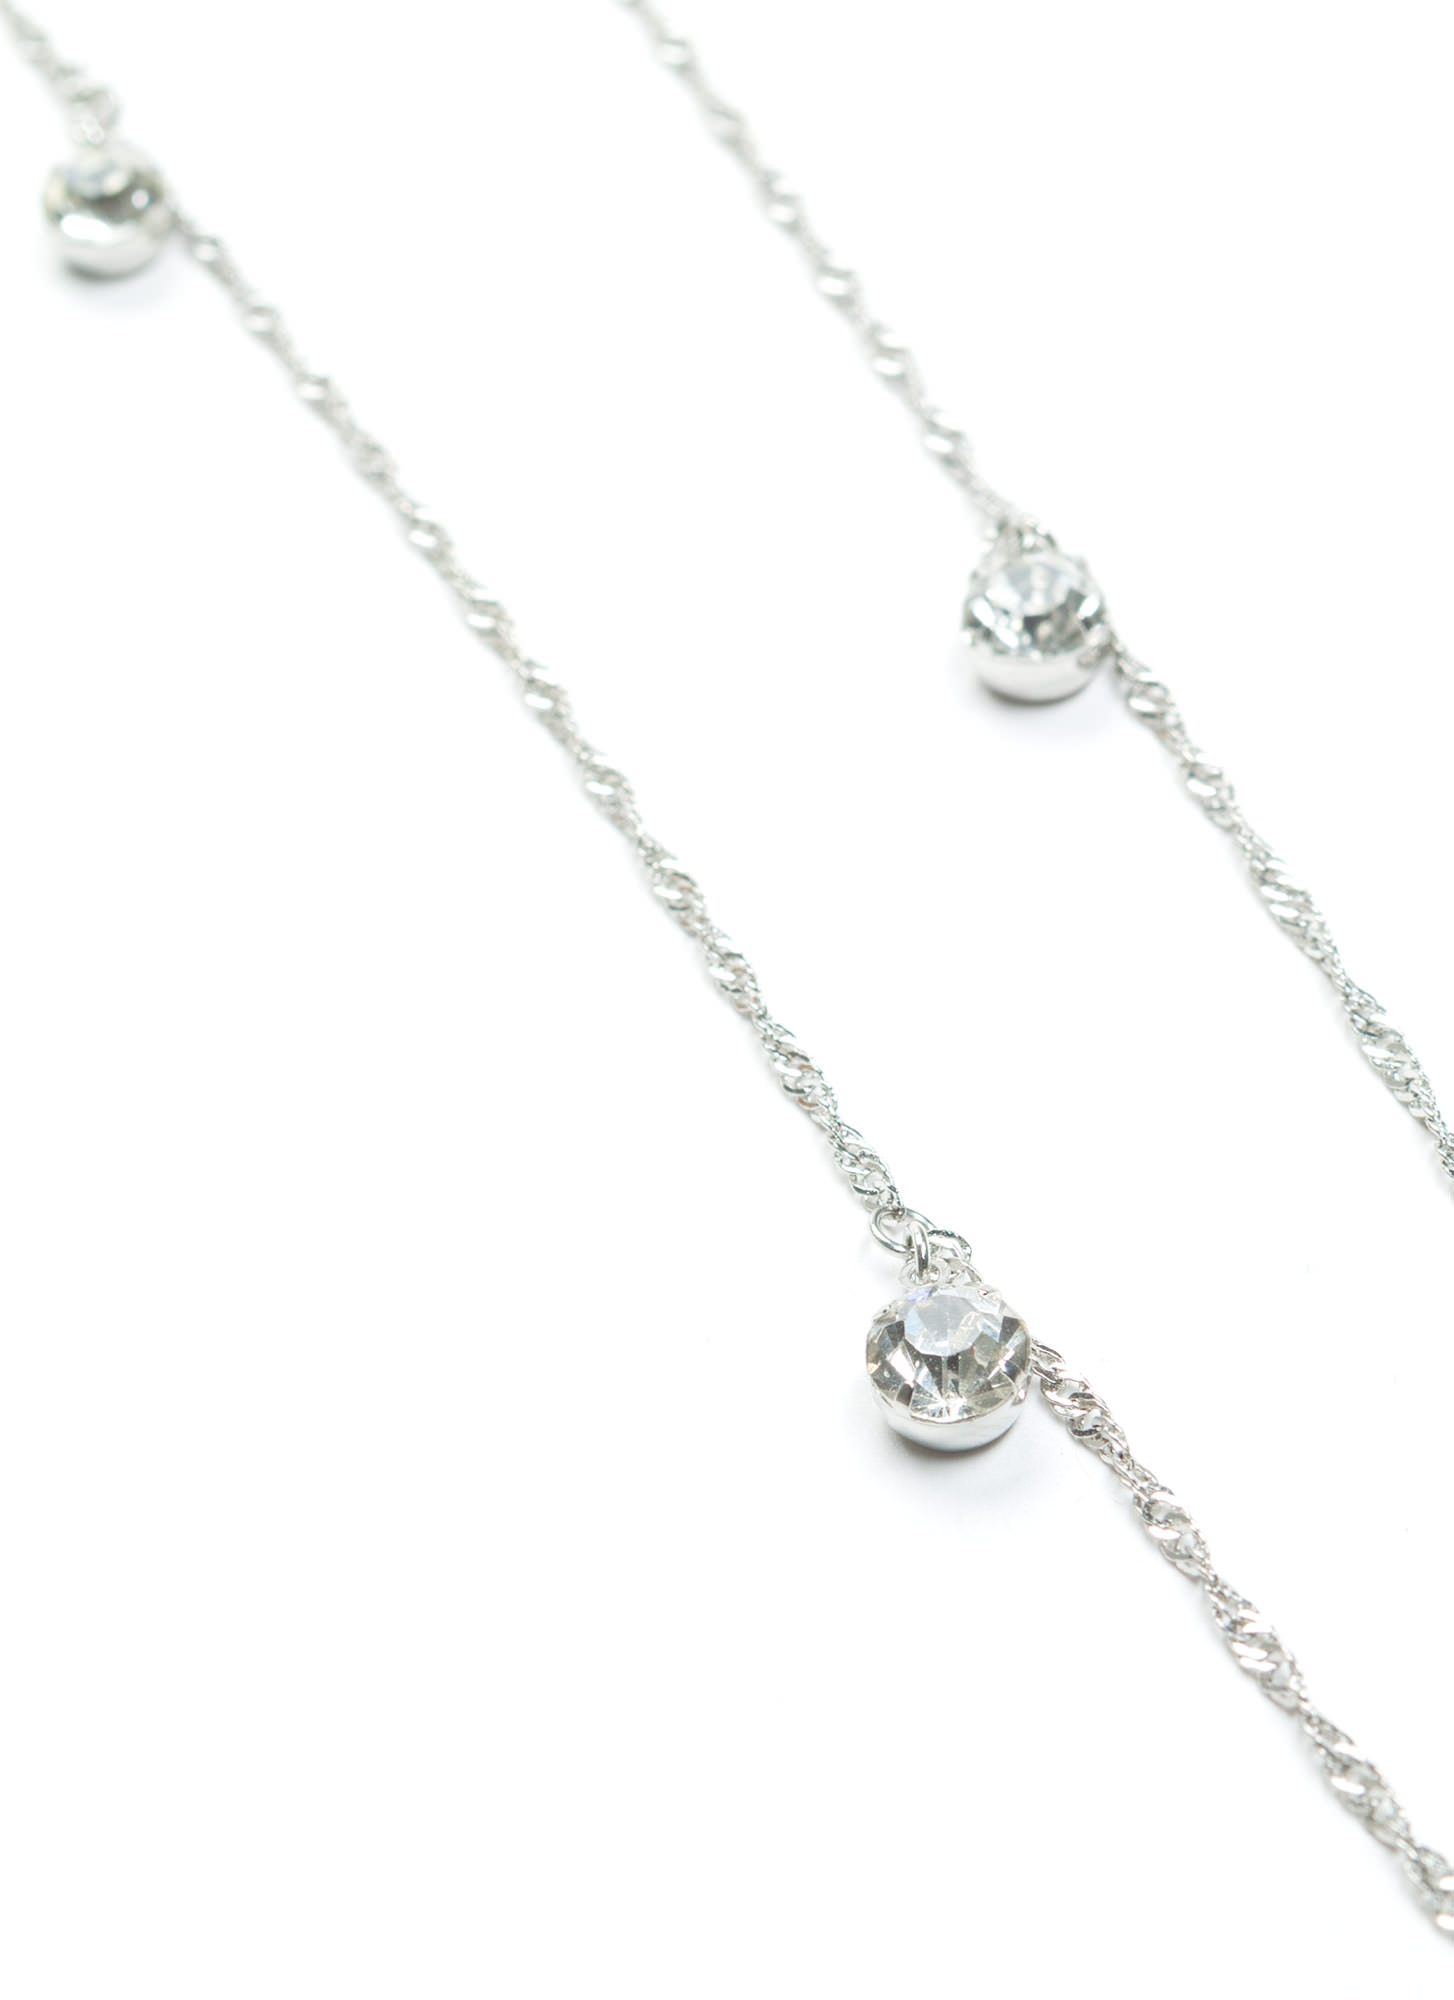 Multiuse Faux Jewel Embellished Chain SILVER